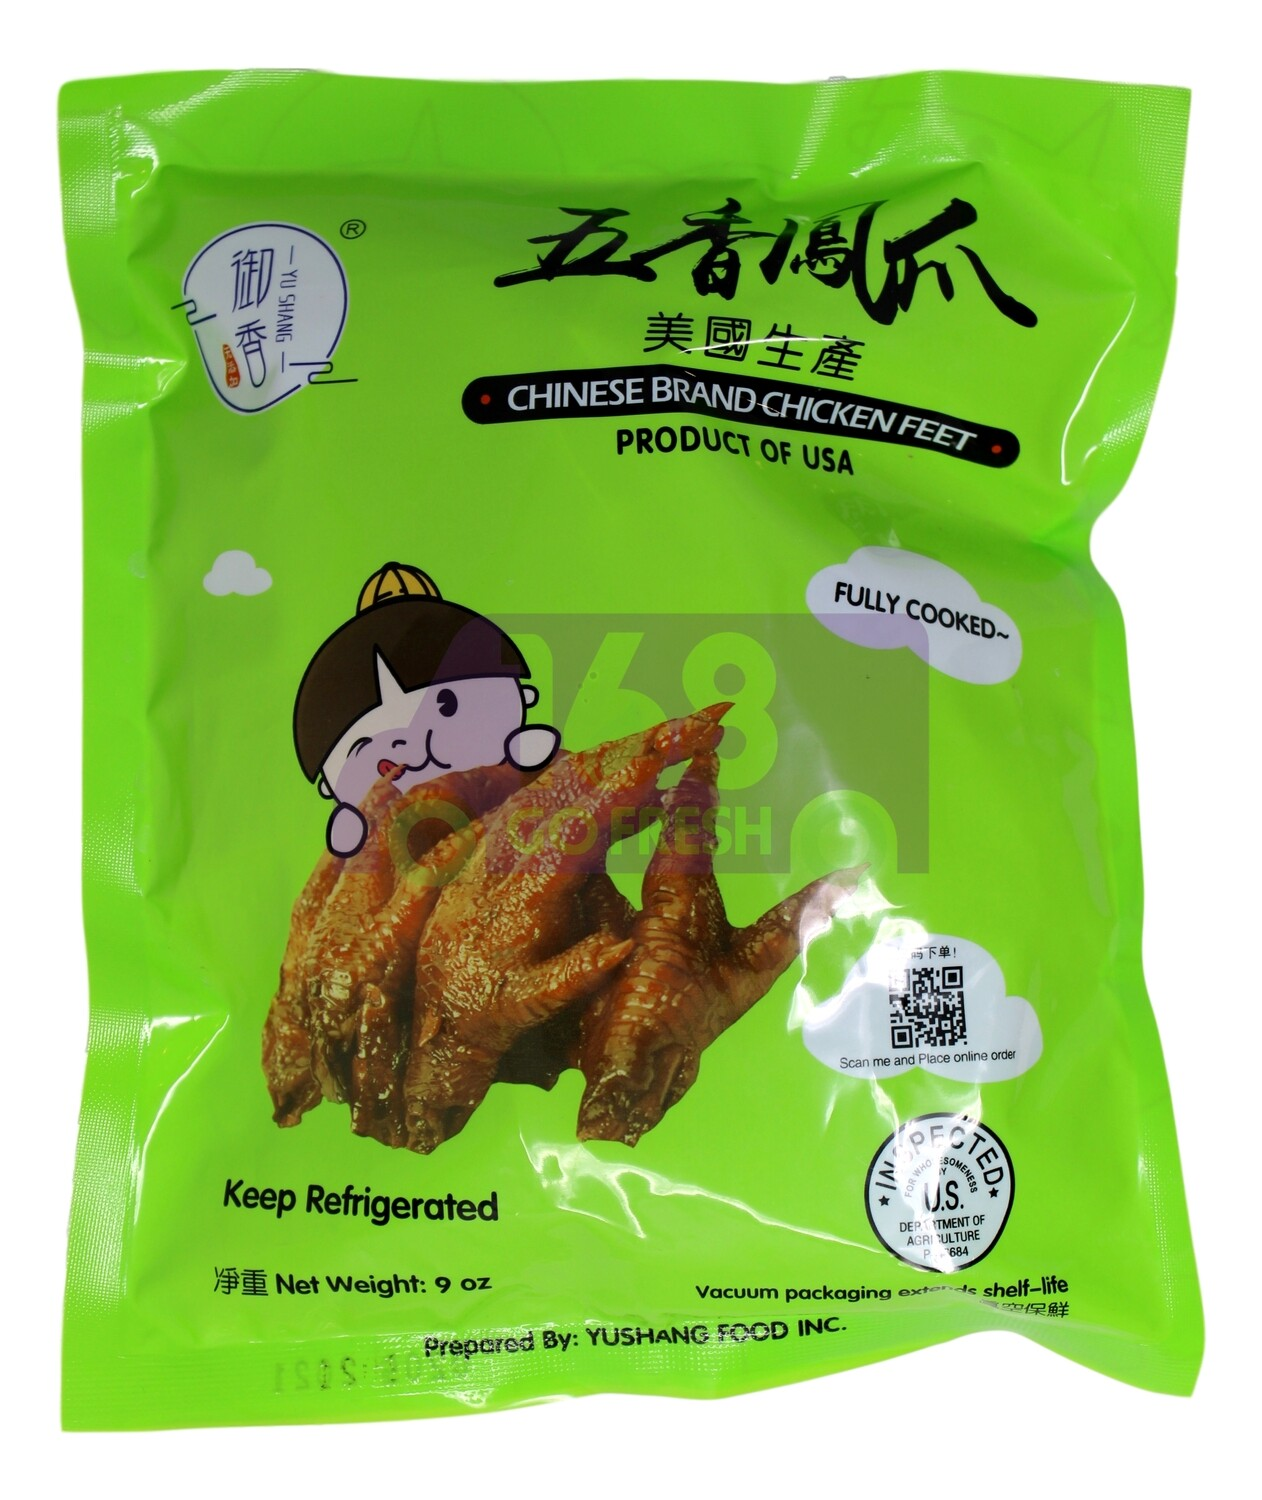 CHINESE BRAND CHICKEN FEET MADE IN USA 御香 五香鸡爪(9OZ)